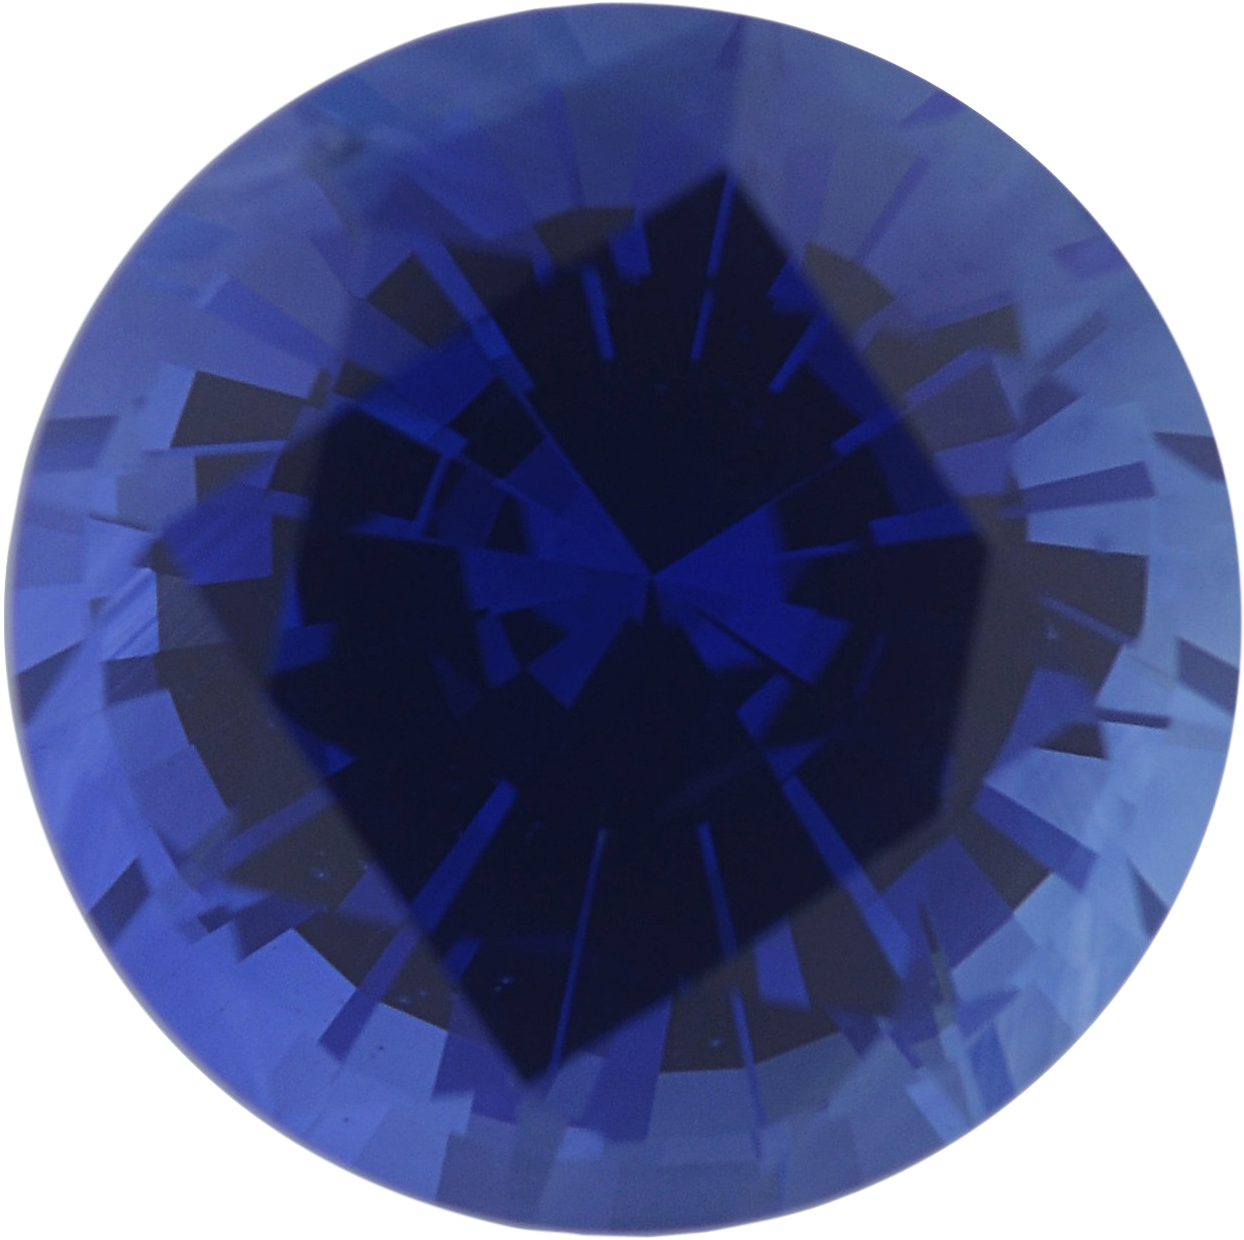 1.87 carats Blue Loose Sapphire Gemstone in Round Cut, 7.24 mm